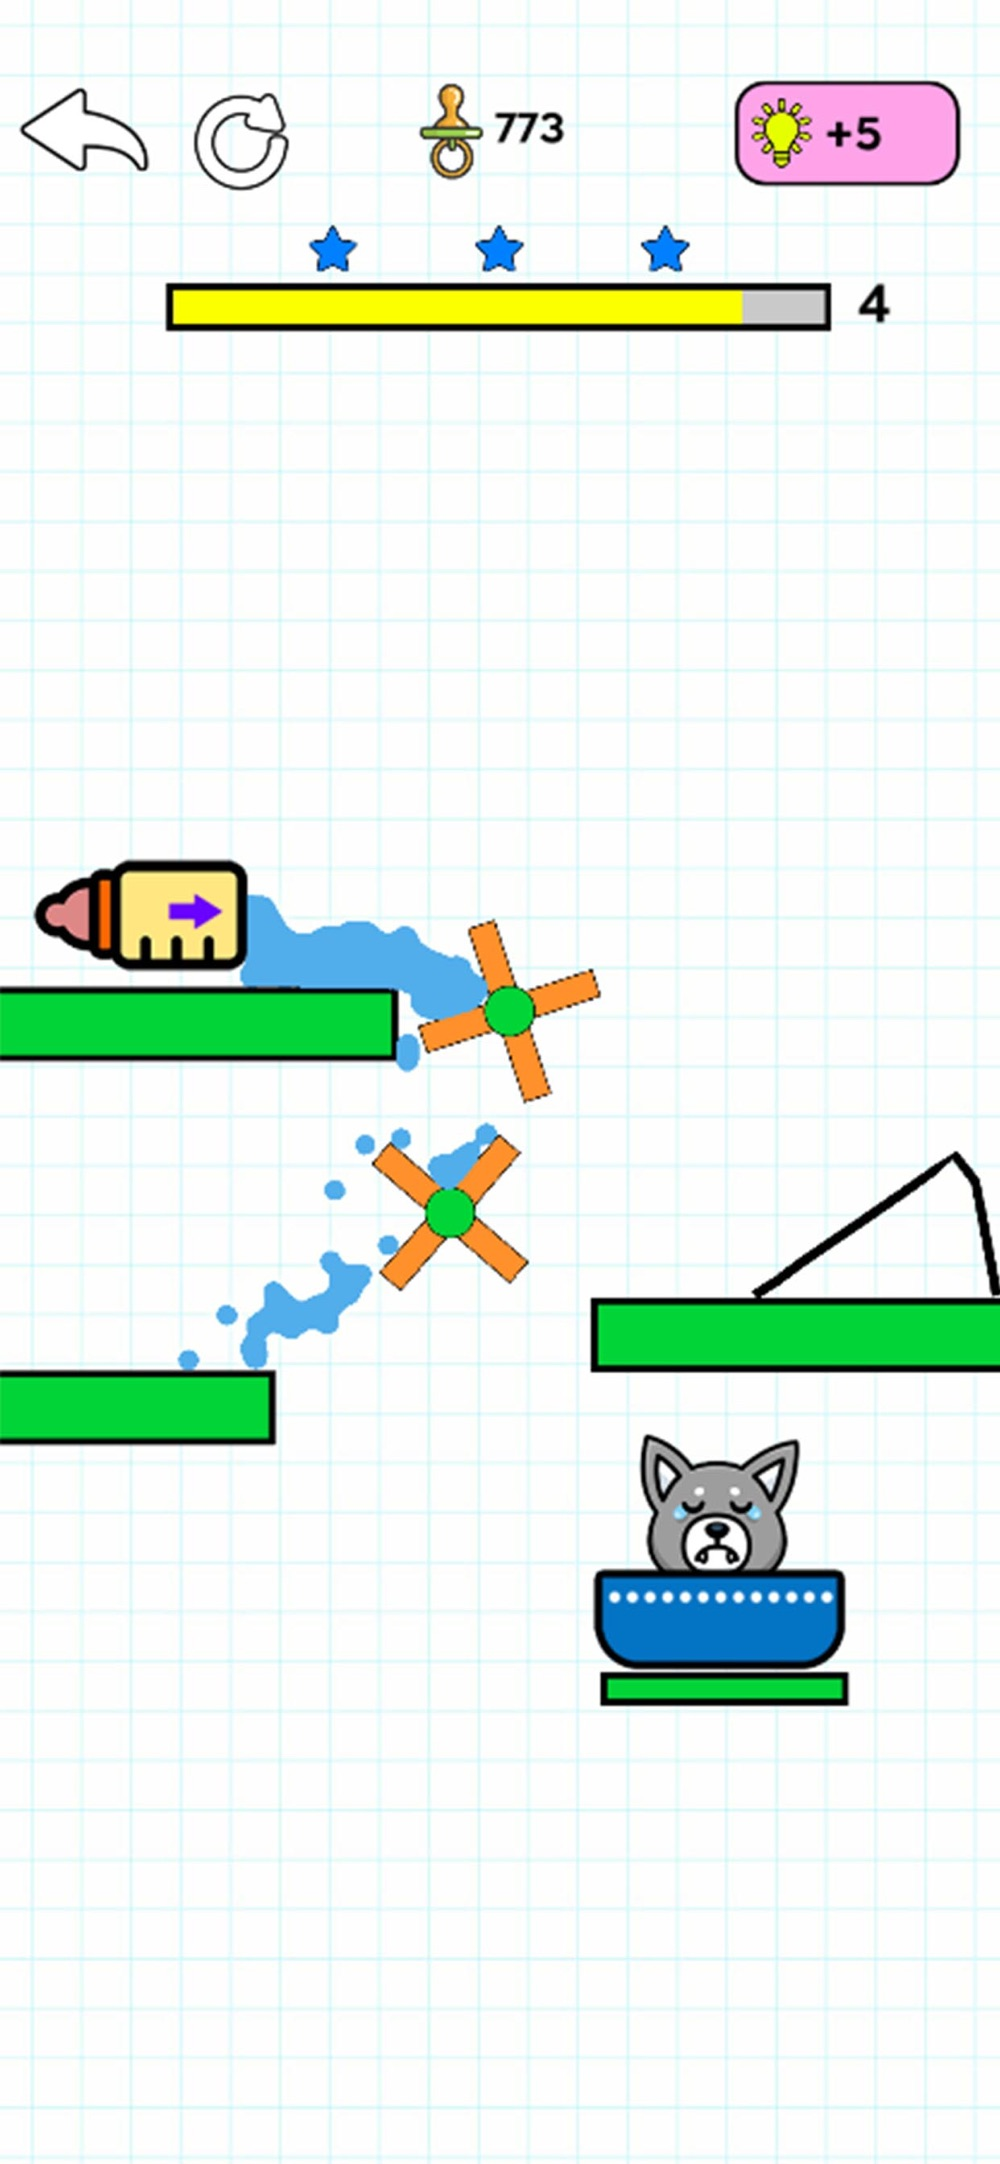 Happy Corgi - Draw a Line hack tool